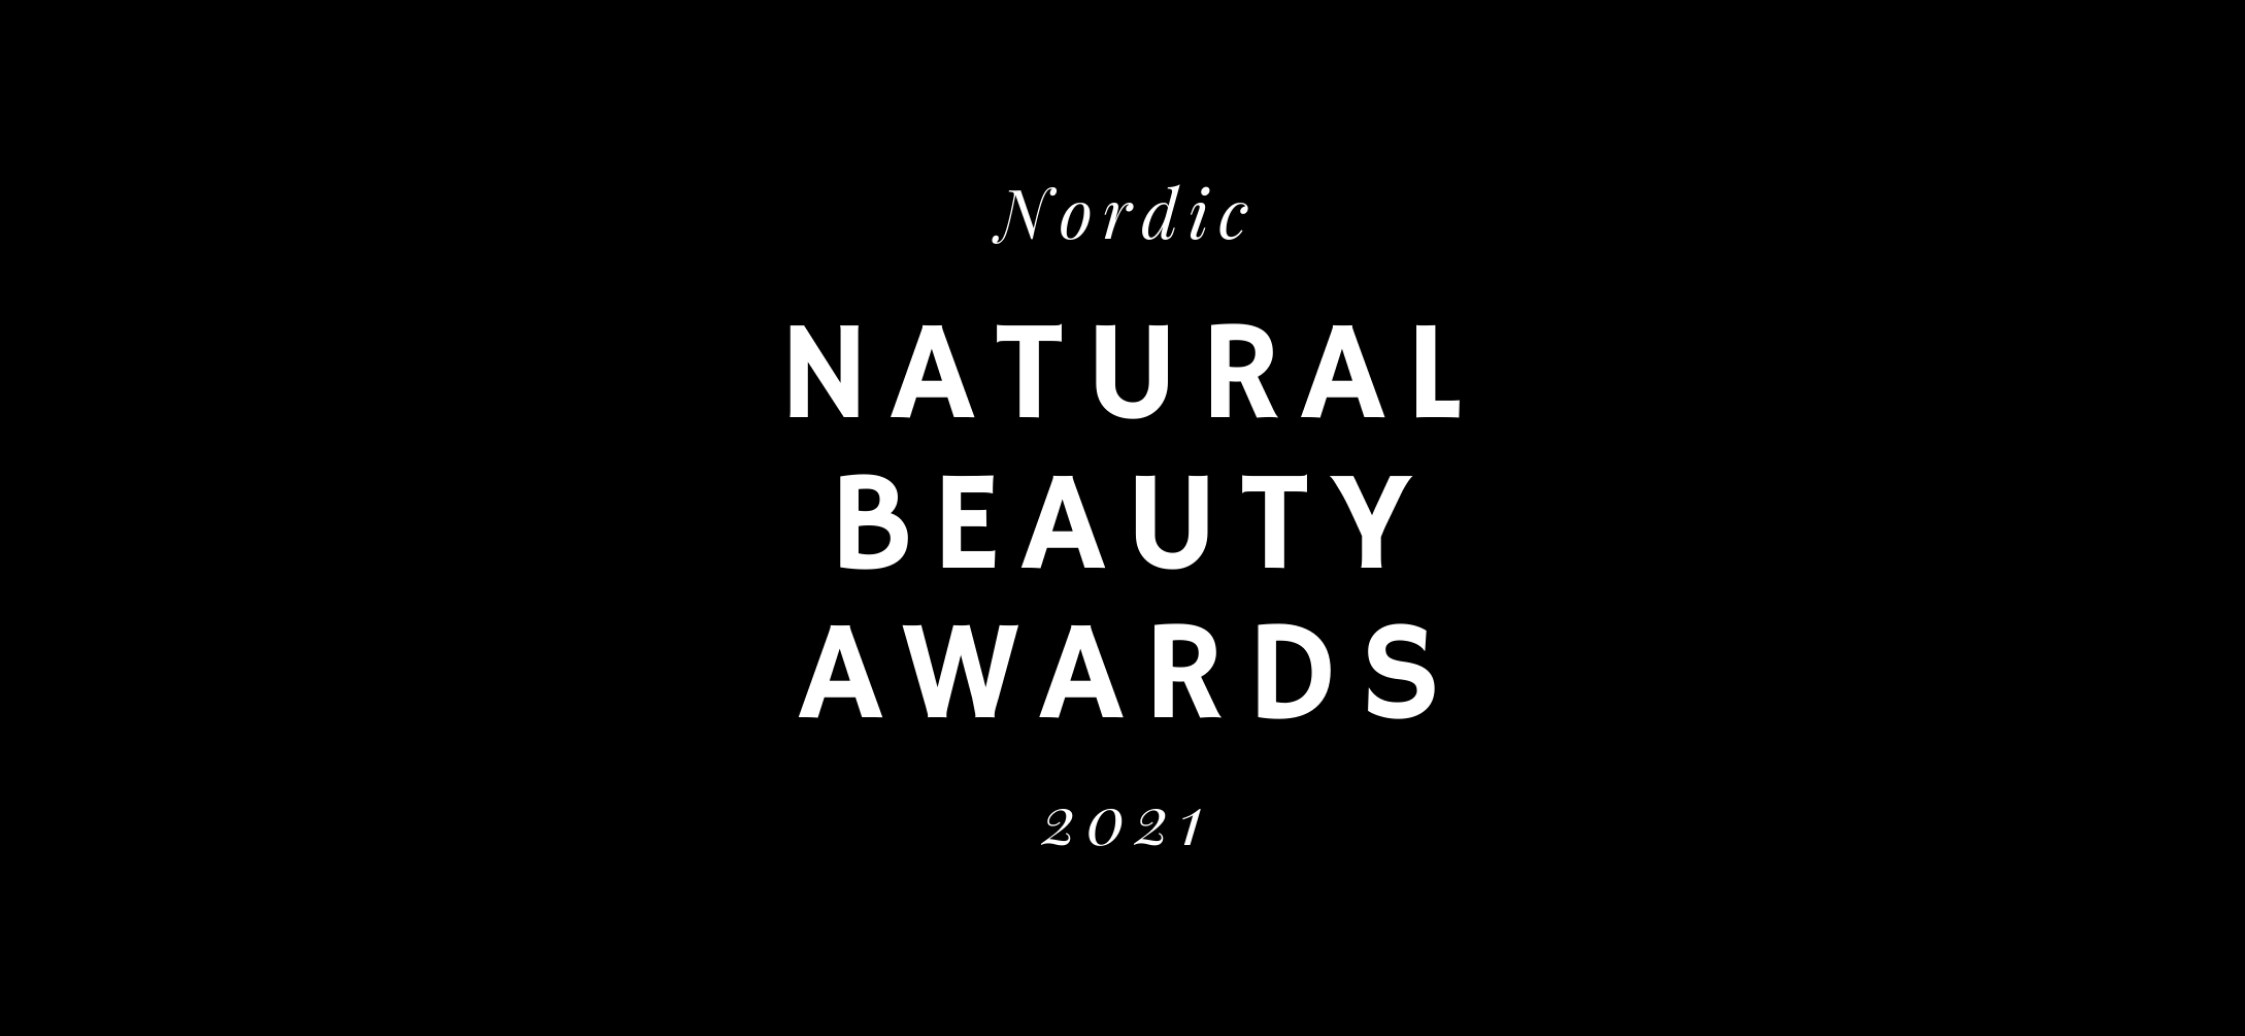 nordic-natural-beauty-awards-2021-early-bird-registration-finnish-danish-icelandic-norwegian-swedish-indie-brands-cosmetics-green-clean-luonnonkosmetiikka-naturlig-kosmetik-hudvård